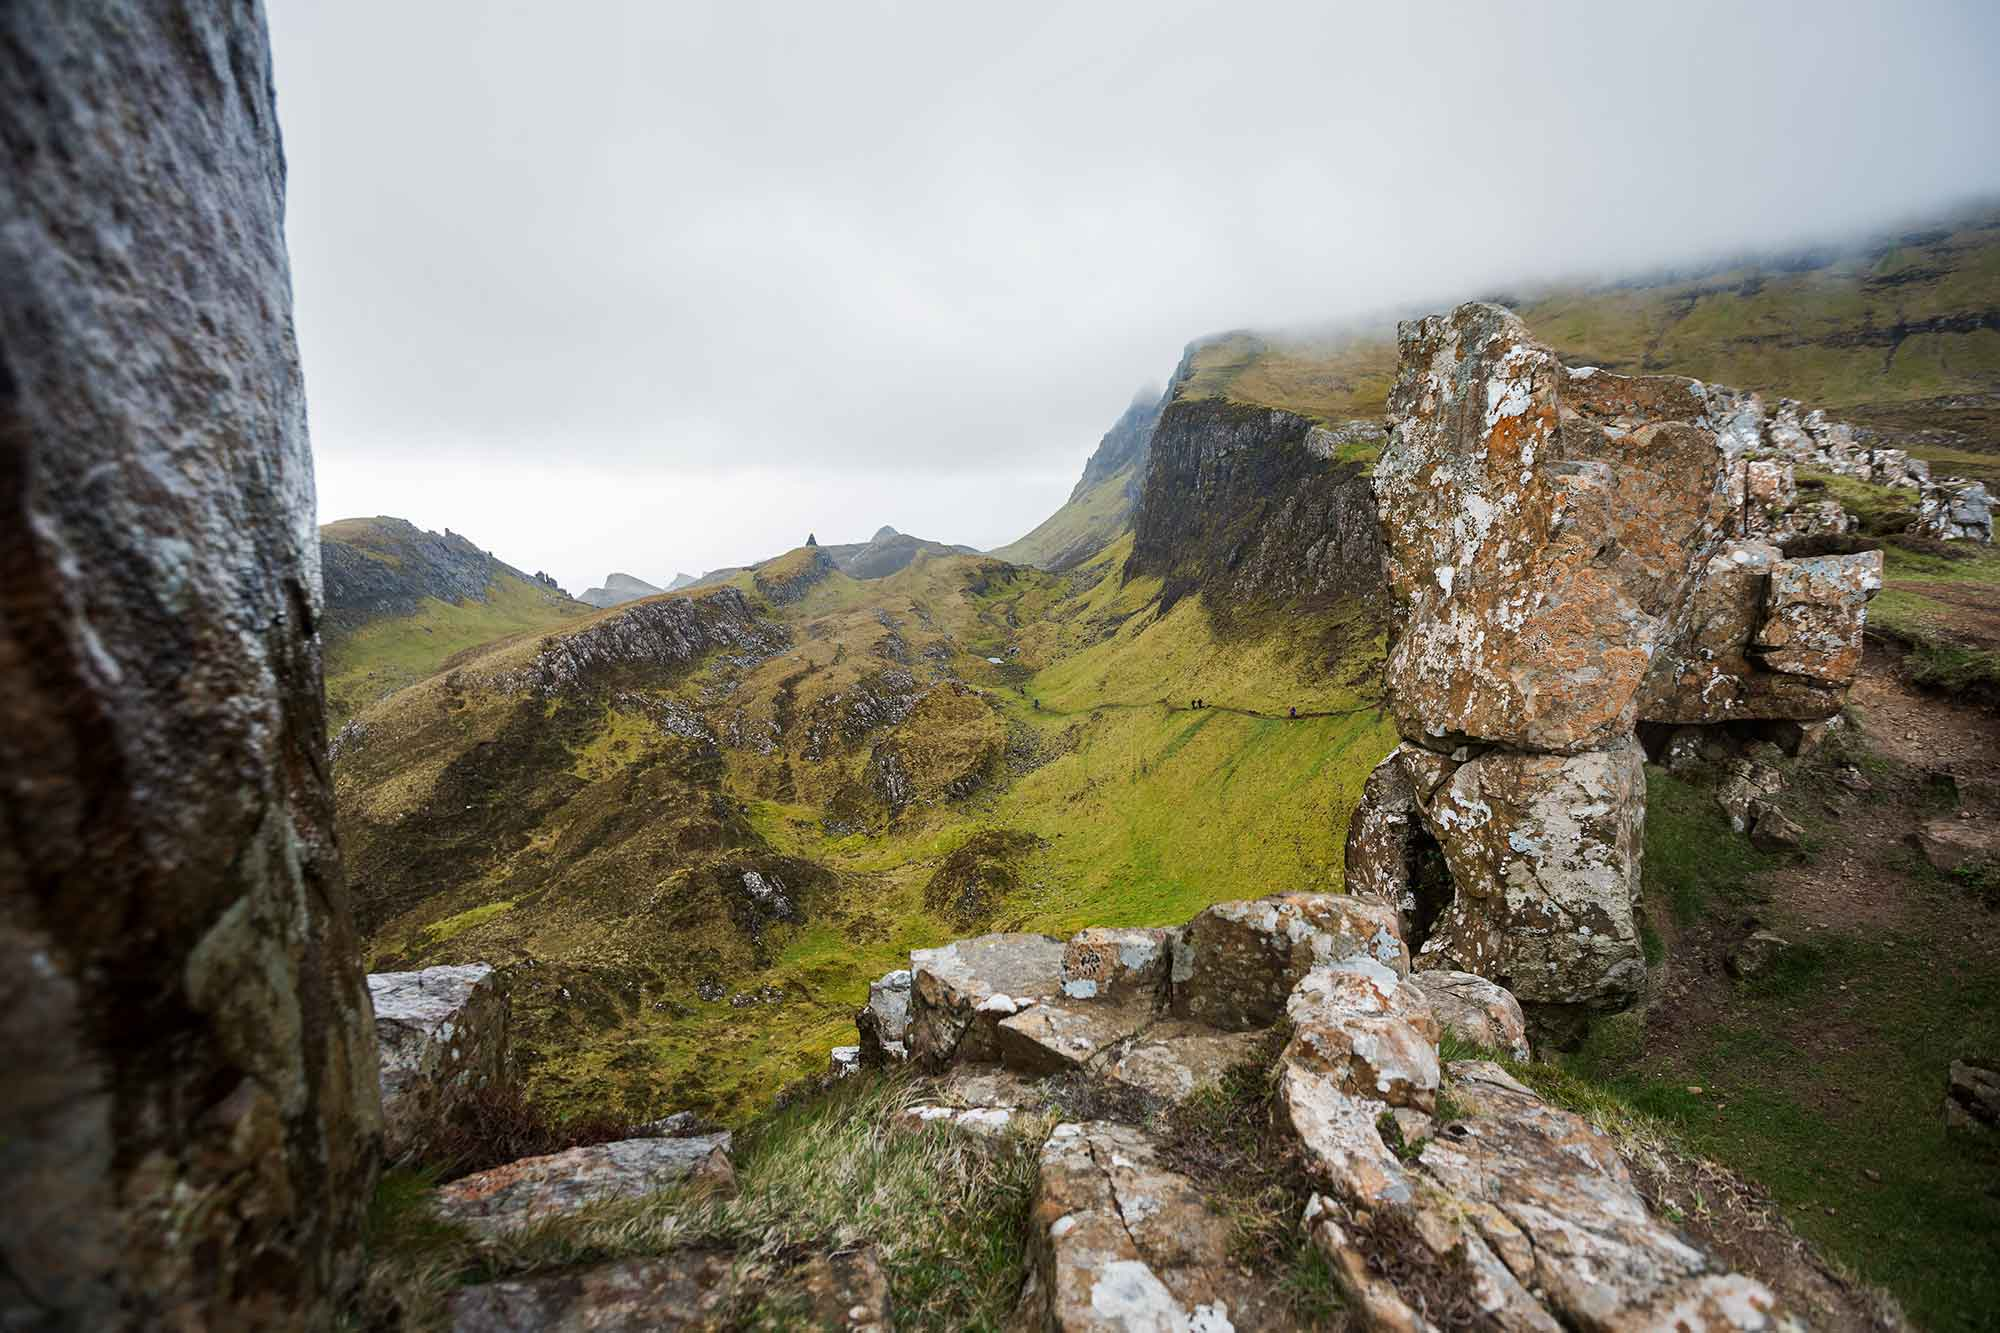 We hiked the Quiraing loop with winds to strong it almost blew us off the cliffs. © ULLI MAIER & NISA MAIER